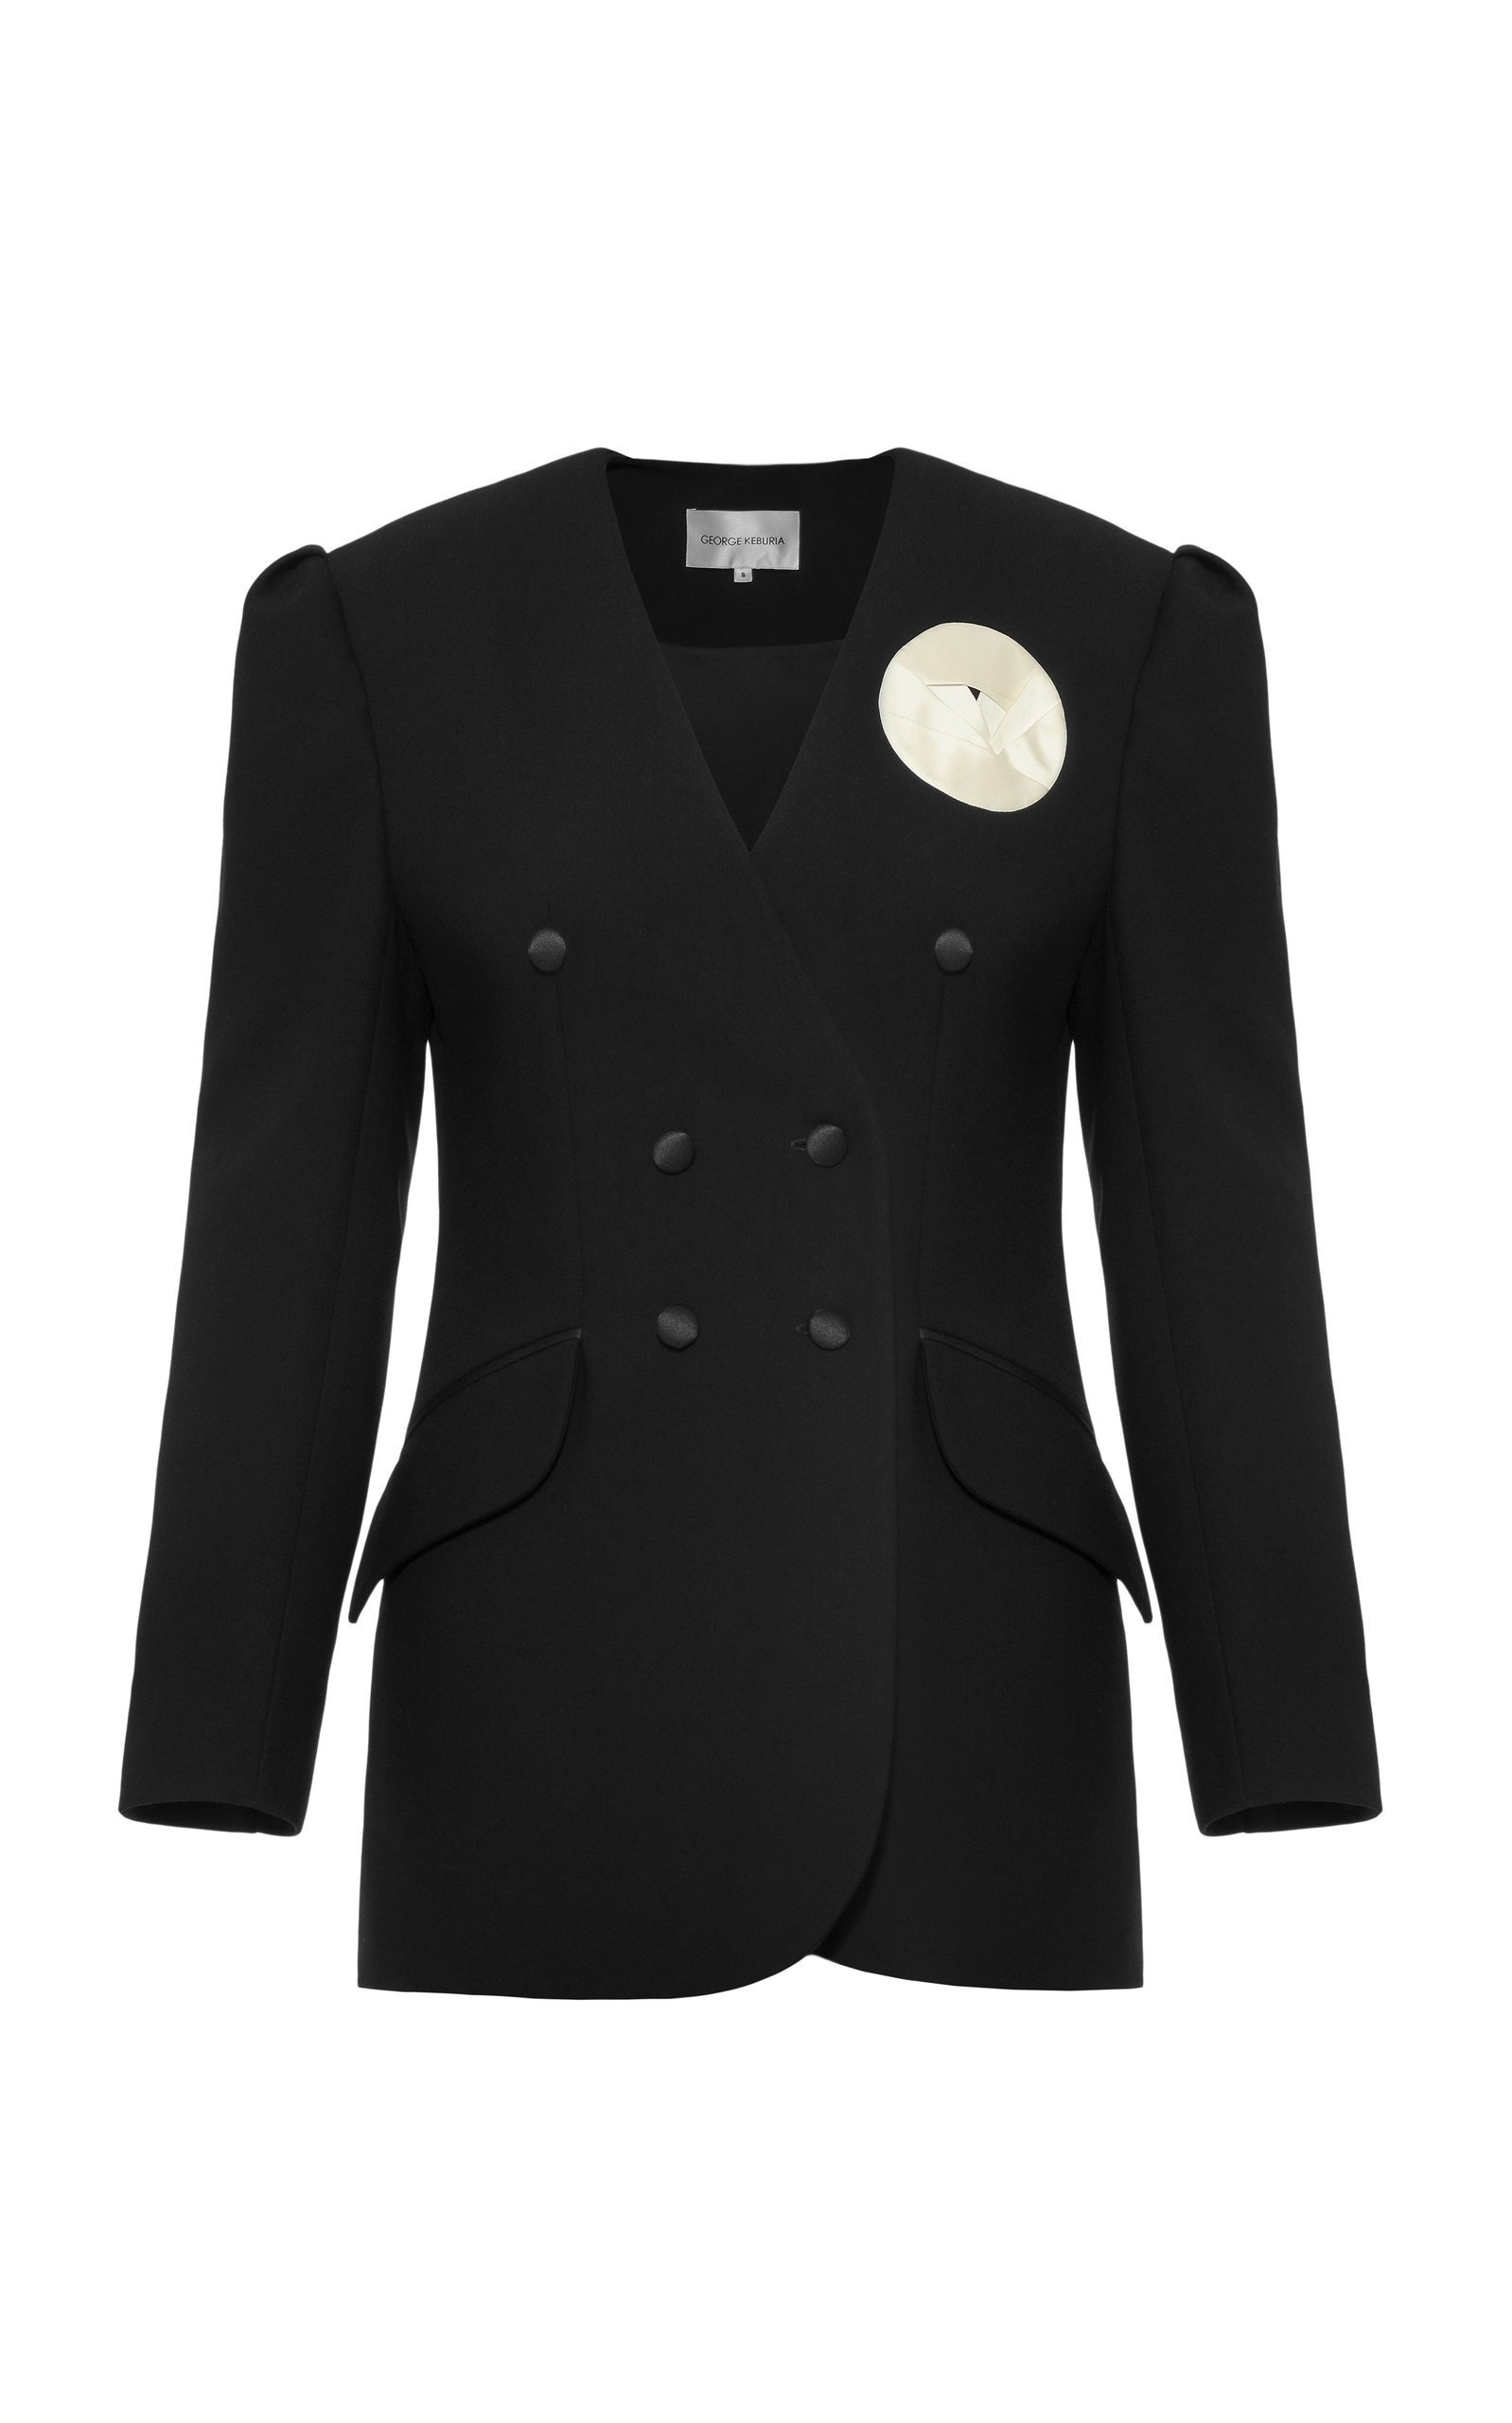 George Keburia Detailed Double-Breasted Cady Blazer Size: S